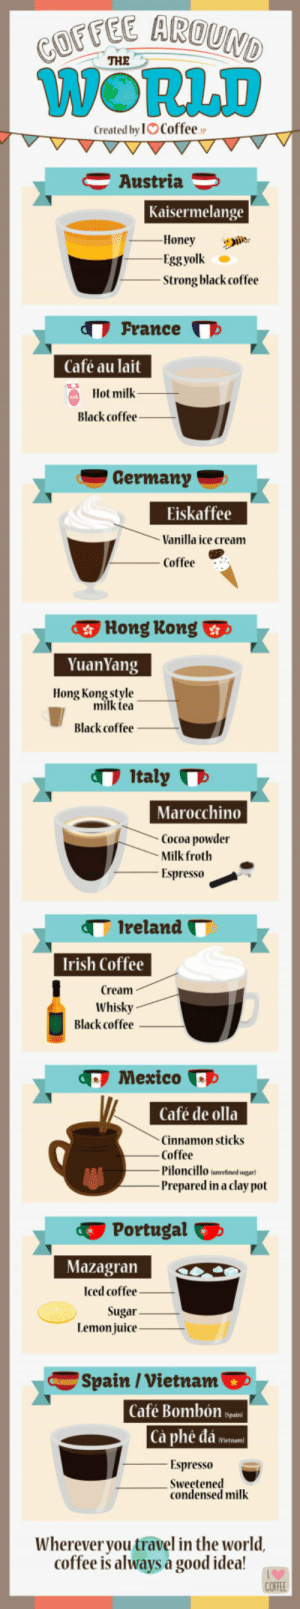 Irish, Juice, and Love: THE  WORLD  Created by IO Coffee  Austria 3  Kaisermelange  Honey  Strong black coffee  France  Café au lait  Hot milk_  Black coffee -  Germany  Eiskaffee  Vanilla ice cream  Coffee  Hong Kong  YuanYang  Hong Kong style  milk tea  Black coffee  Italy  Marocchino  Cocoa powder  Milk froth  -Espresso  Ireland  Irish Coffee  Cream  Whisky  Black coffee  Mexico  Café de olla  Cinnamon sticks  Coffee  Piloncillo unrefined sugar)  Prepared in a clay pot  Portugal  Mazagran  Iced coffee  Sugar  Lemon juice  Spain / Vietnam  Café Bombon sp  Ca phe da e»-  -Espresso  -sweetened  condensed milk  Whereveryou travel in the world.  coffee is always a good idea! Coffee around the world (By I Love Coffee)